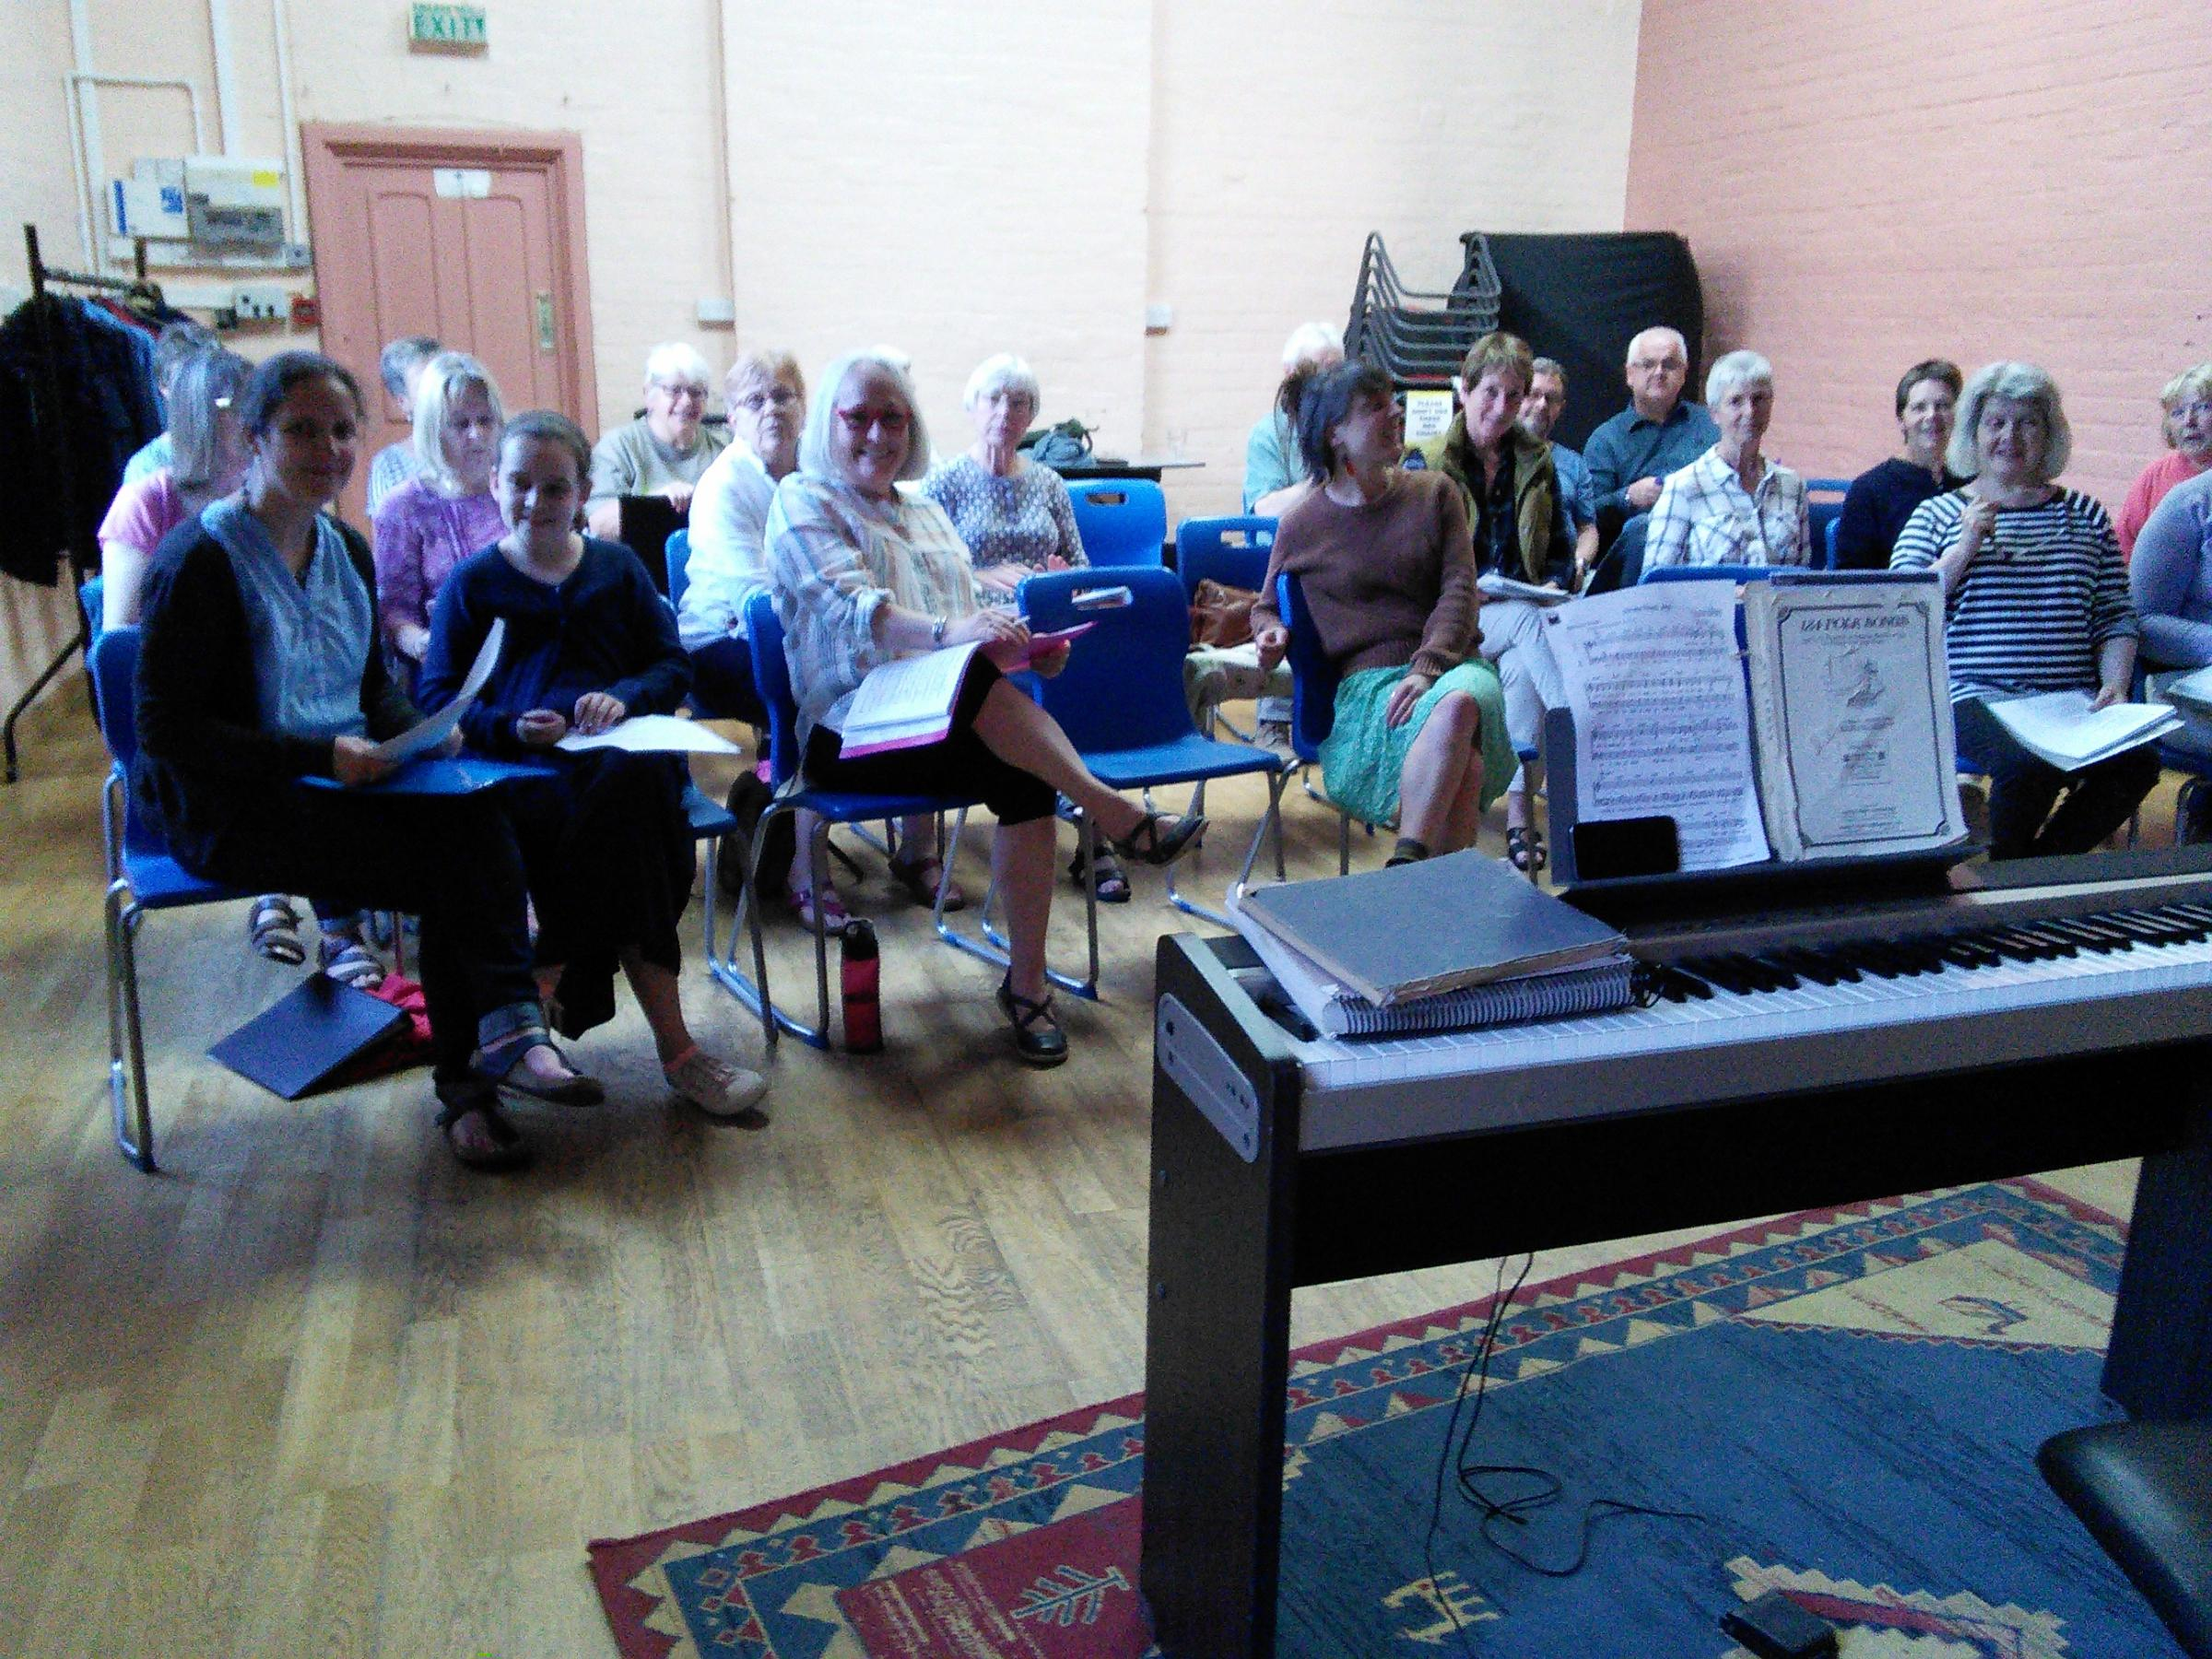 Leominster Community Choir